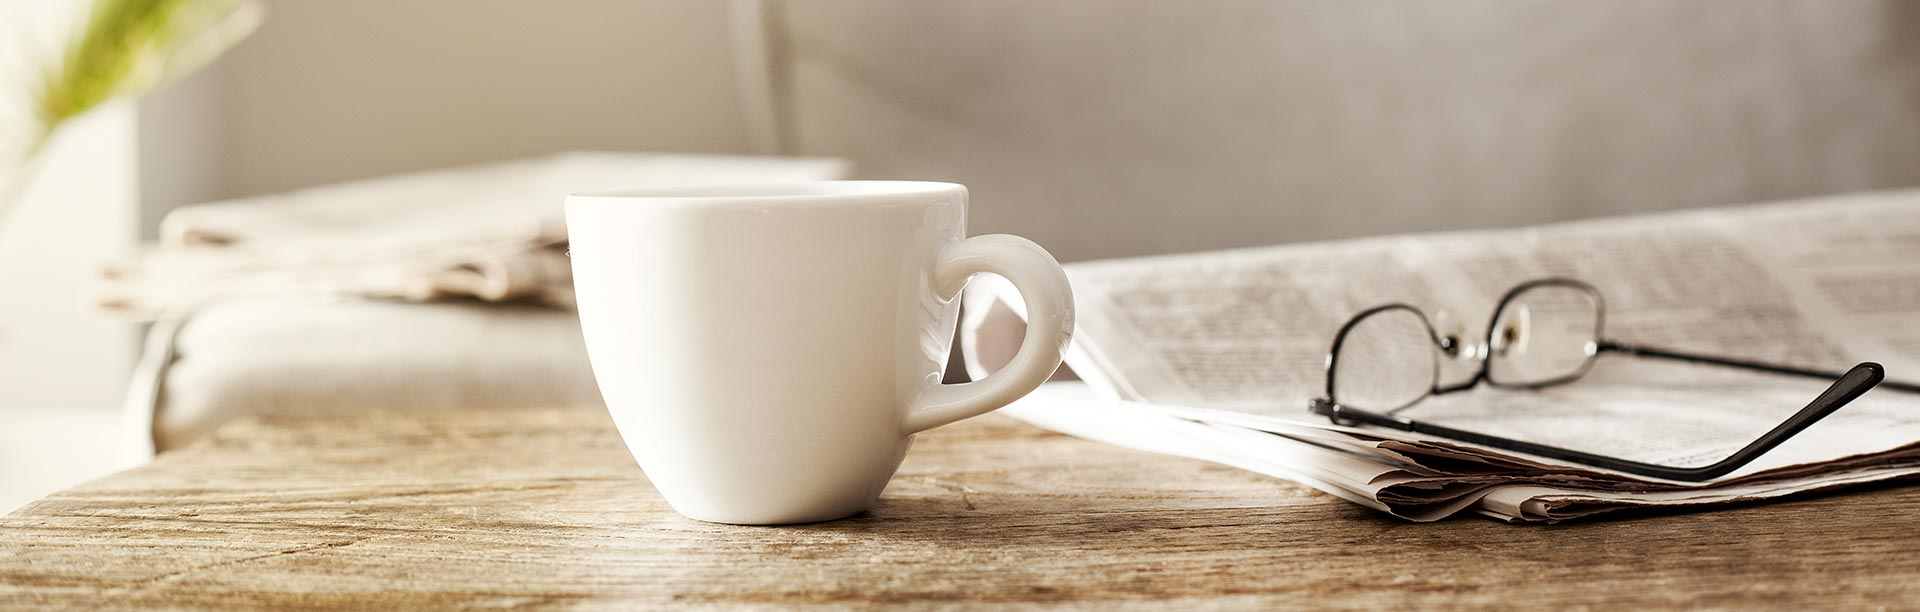 Coffee and glasses on table